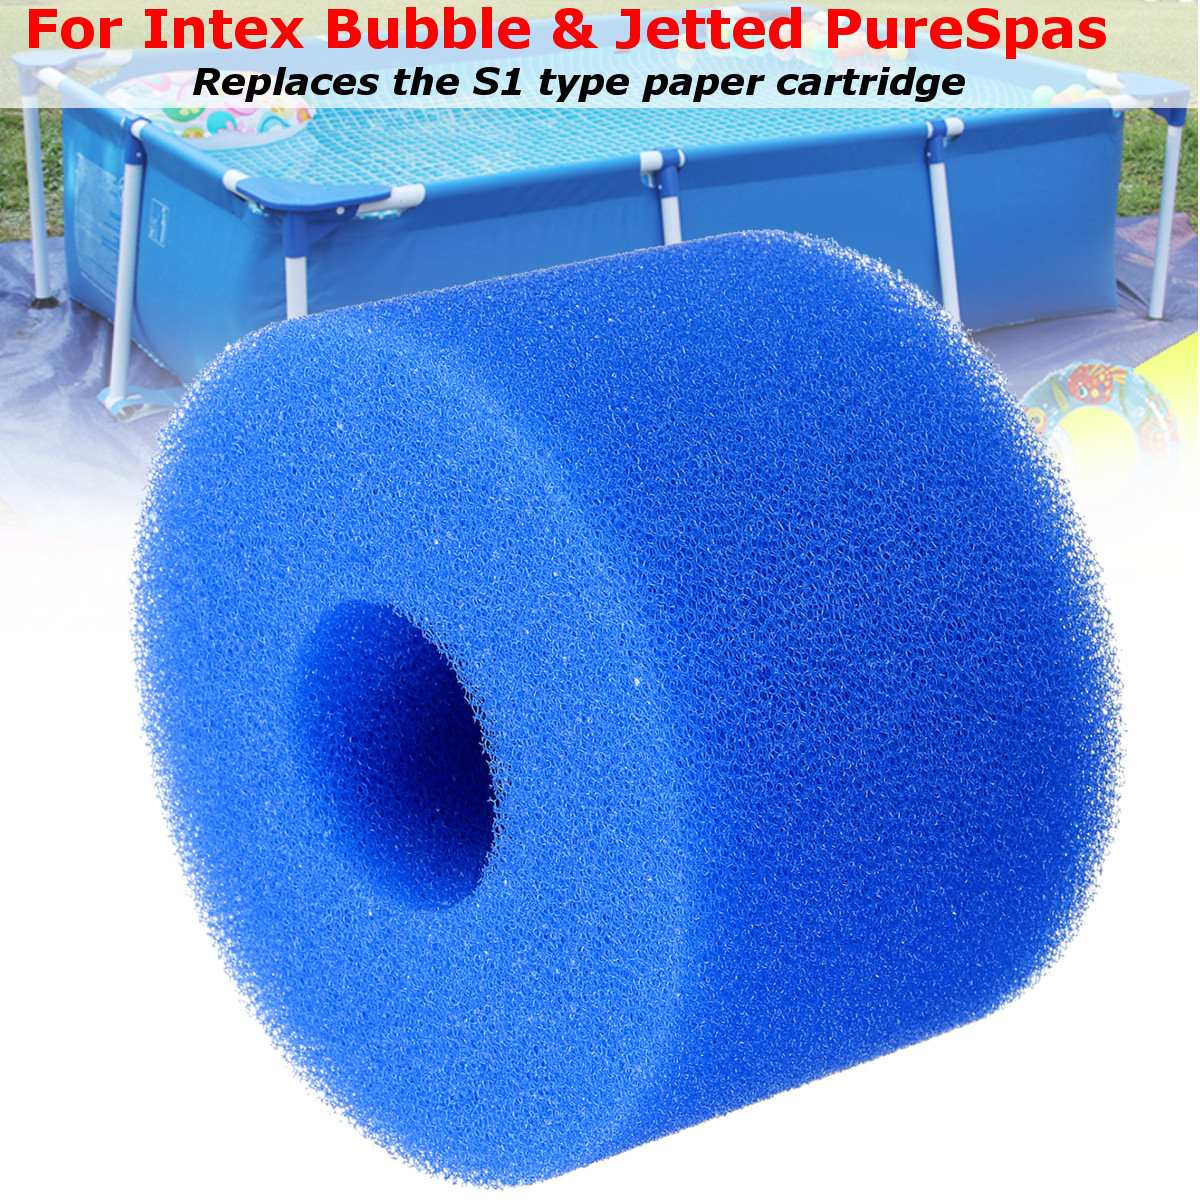 10.8x4x7.3cm Swimming Pool Filter Foam Reusable Washable Sponge Cartridge Foam Suitable Bubble Jetted Pure SPA For Intex S1 Type(China)